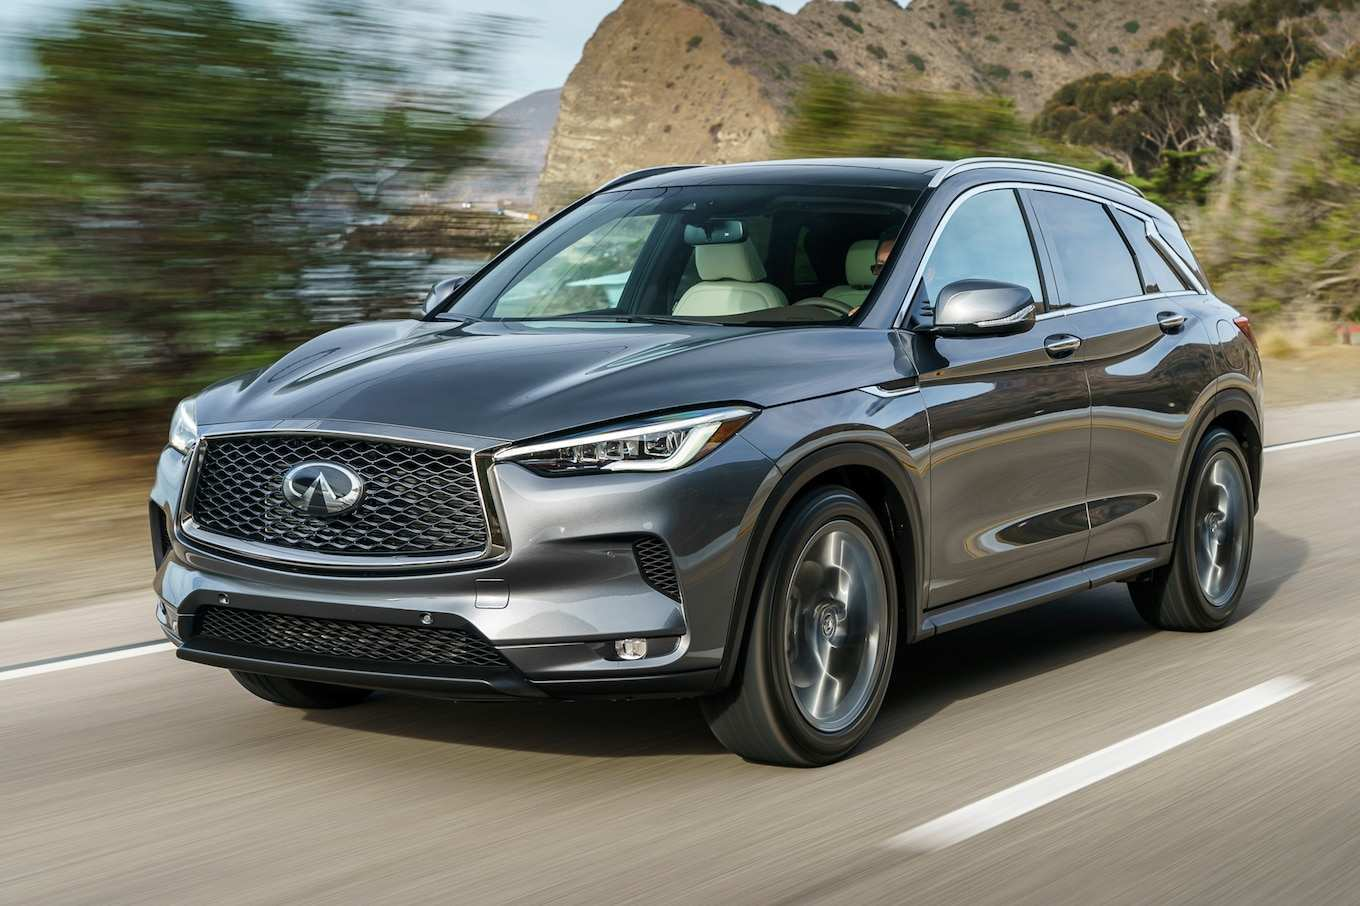 22 All New The Infiniti Qx50 2019 Black First Drive New Review by The Infiniti Qx50 2019 Black First Drive